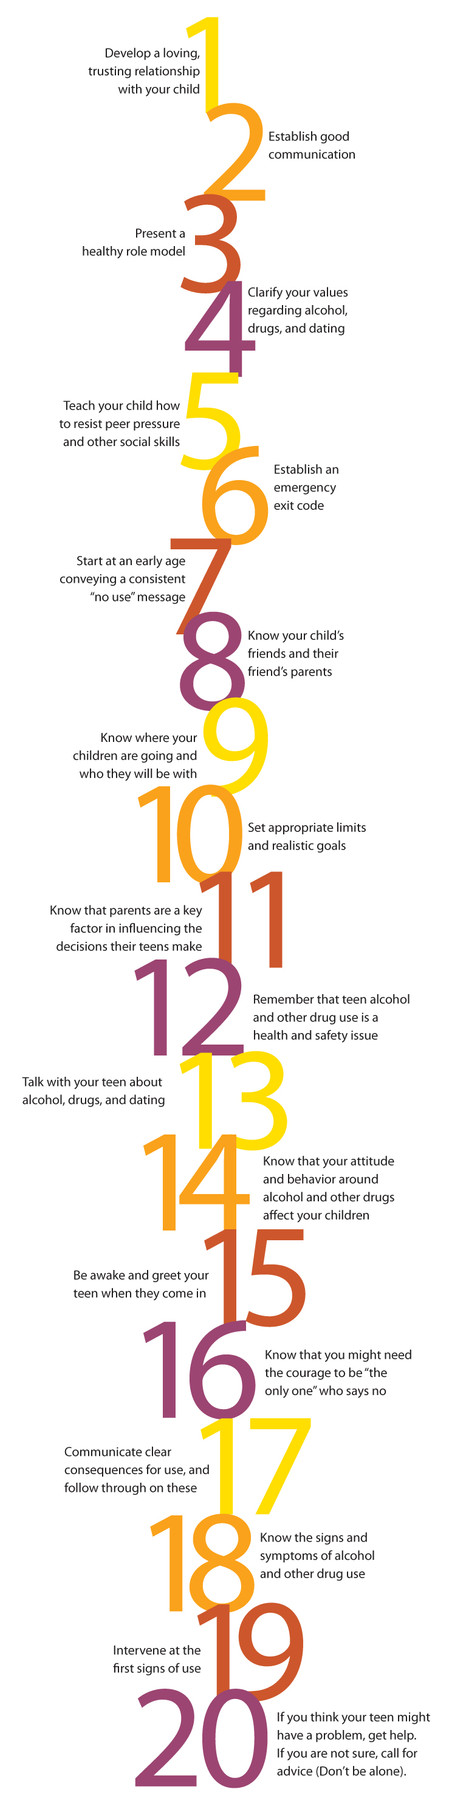 20 Tips To Keep Your Teen Safe